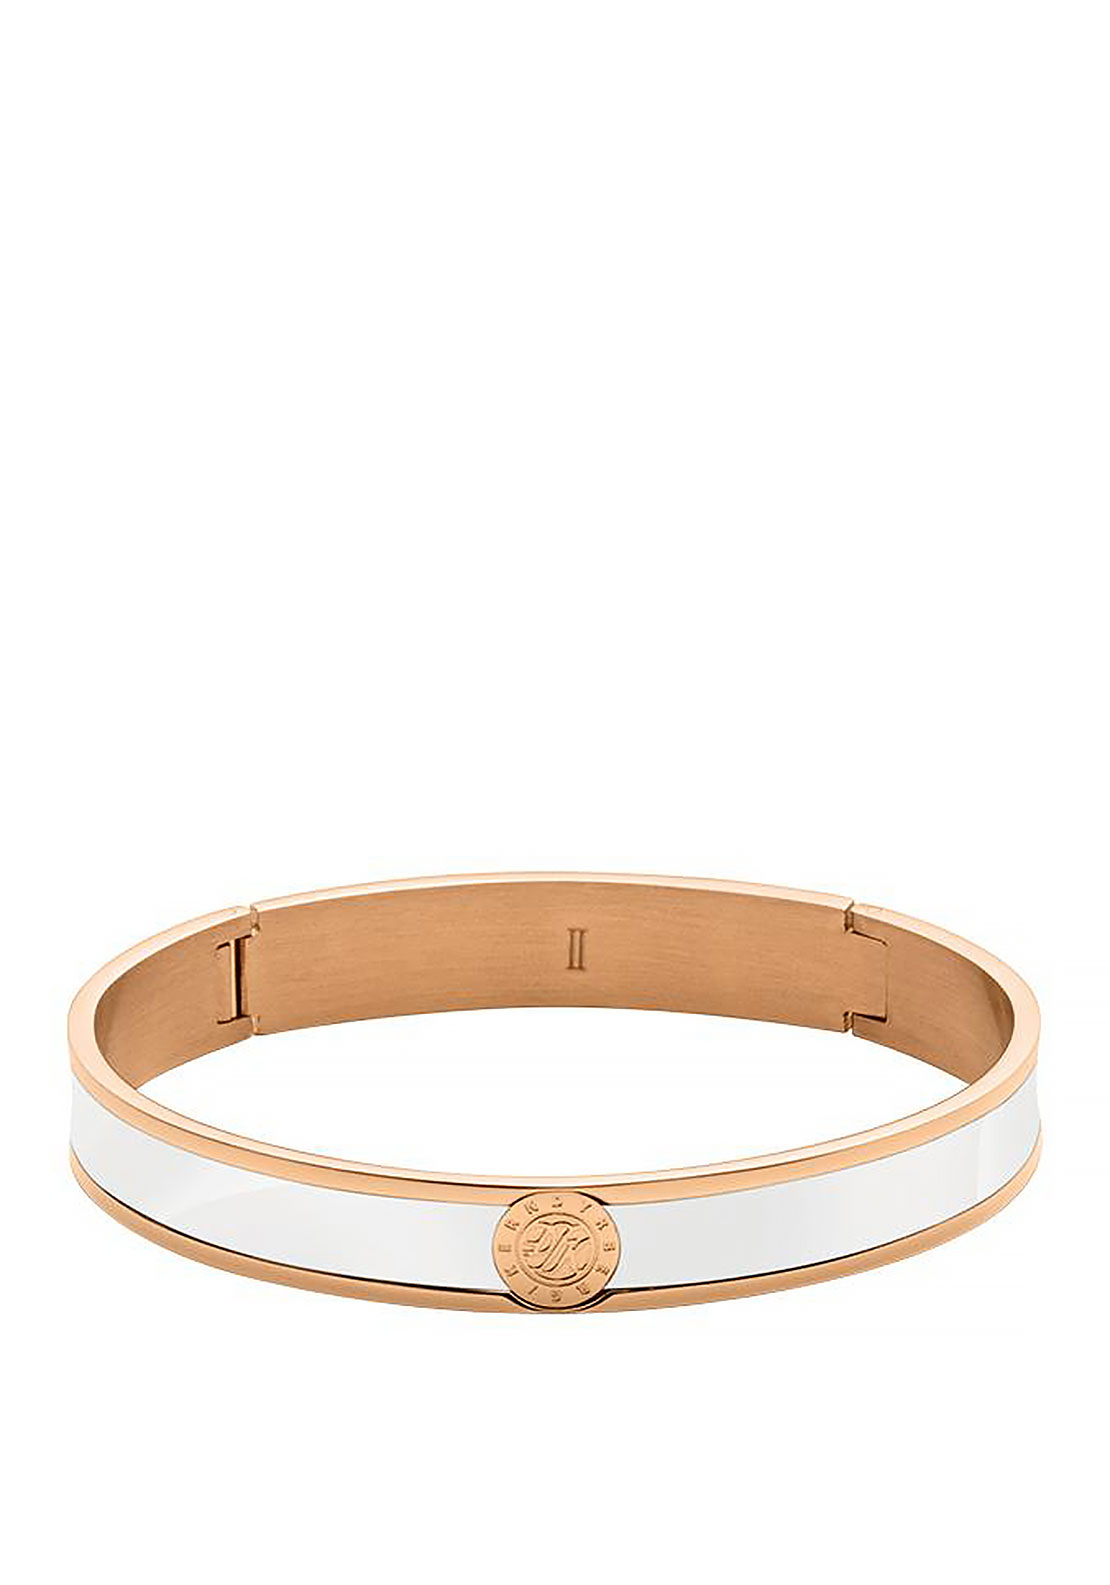 Dyrberg Kern Pennika Bangle, White & Rose Gold